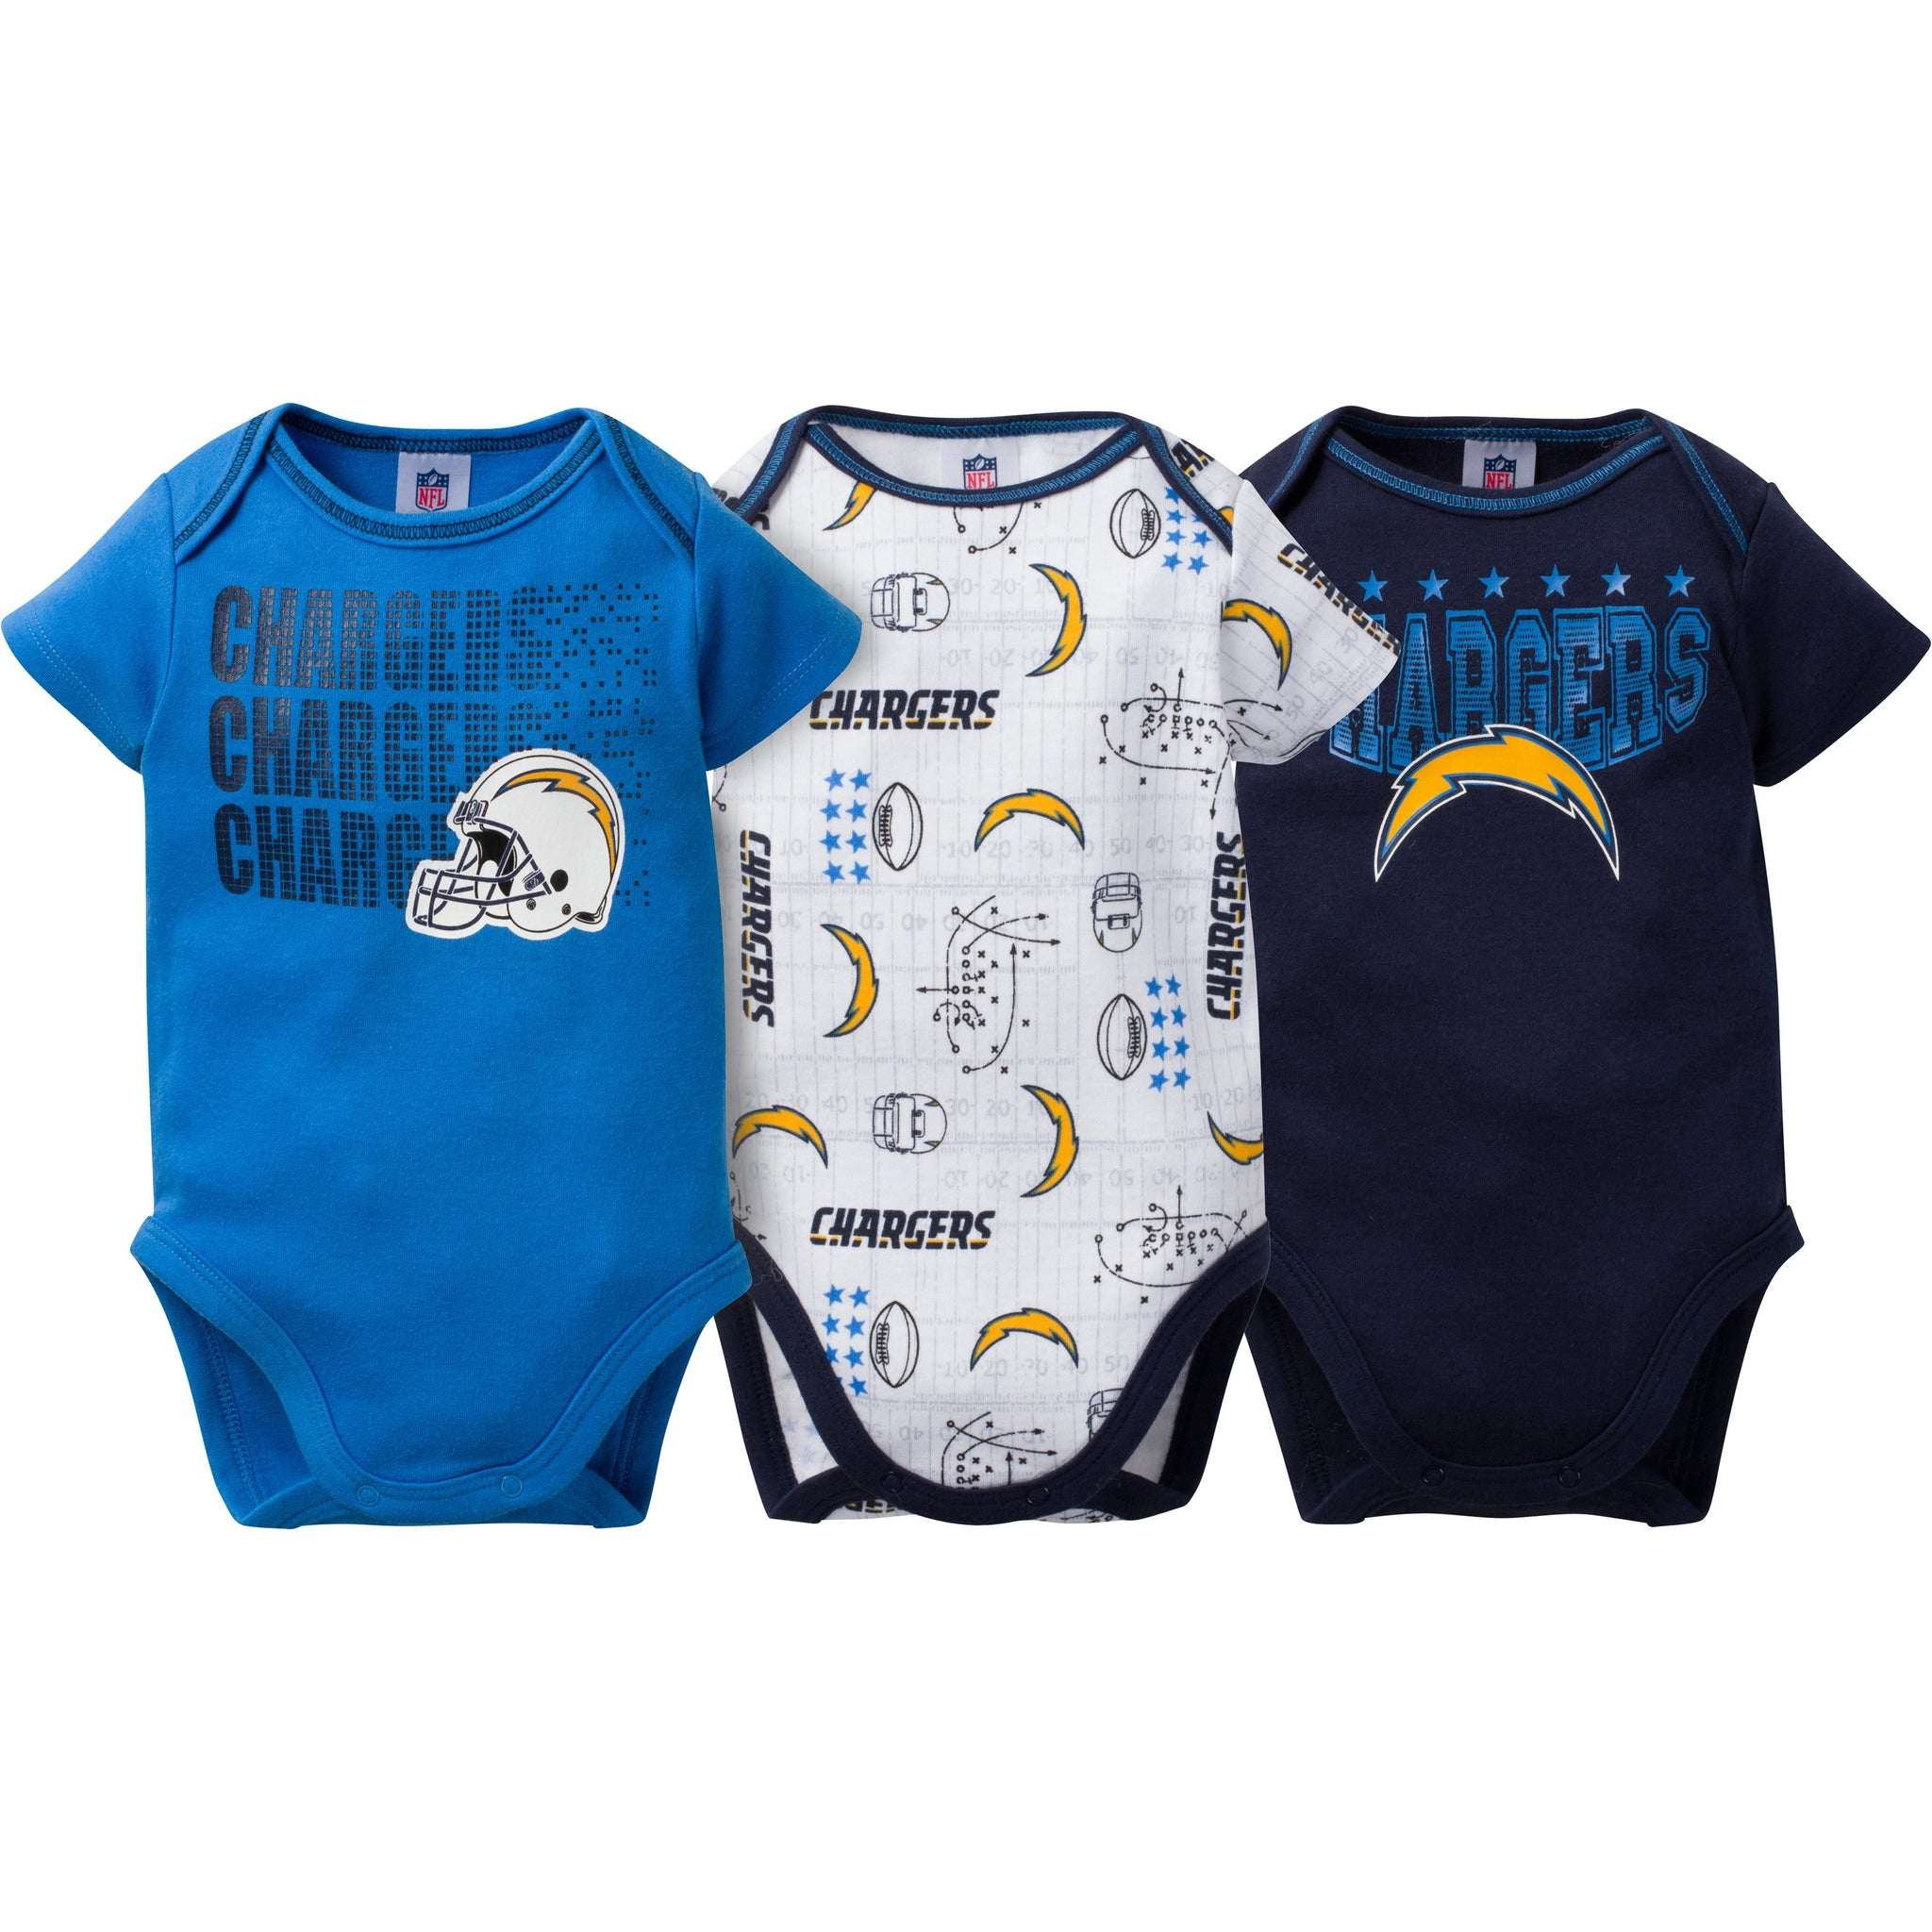 NFL Chargers 3-Pack Infant Short Sleeve Bodysuits-Gerber Childrenswear